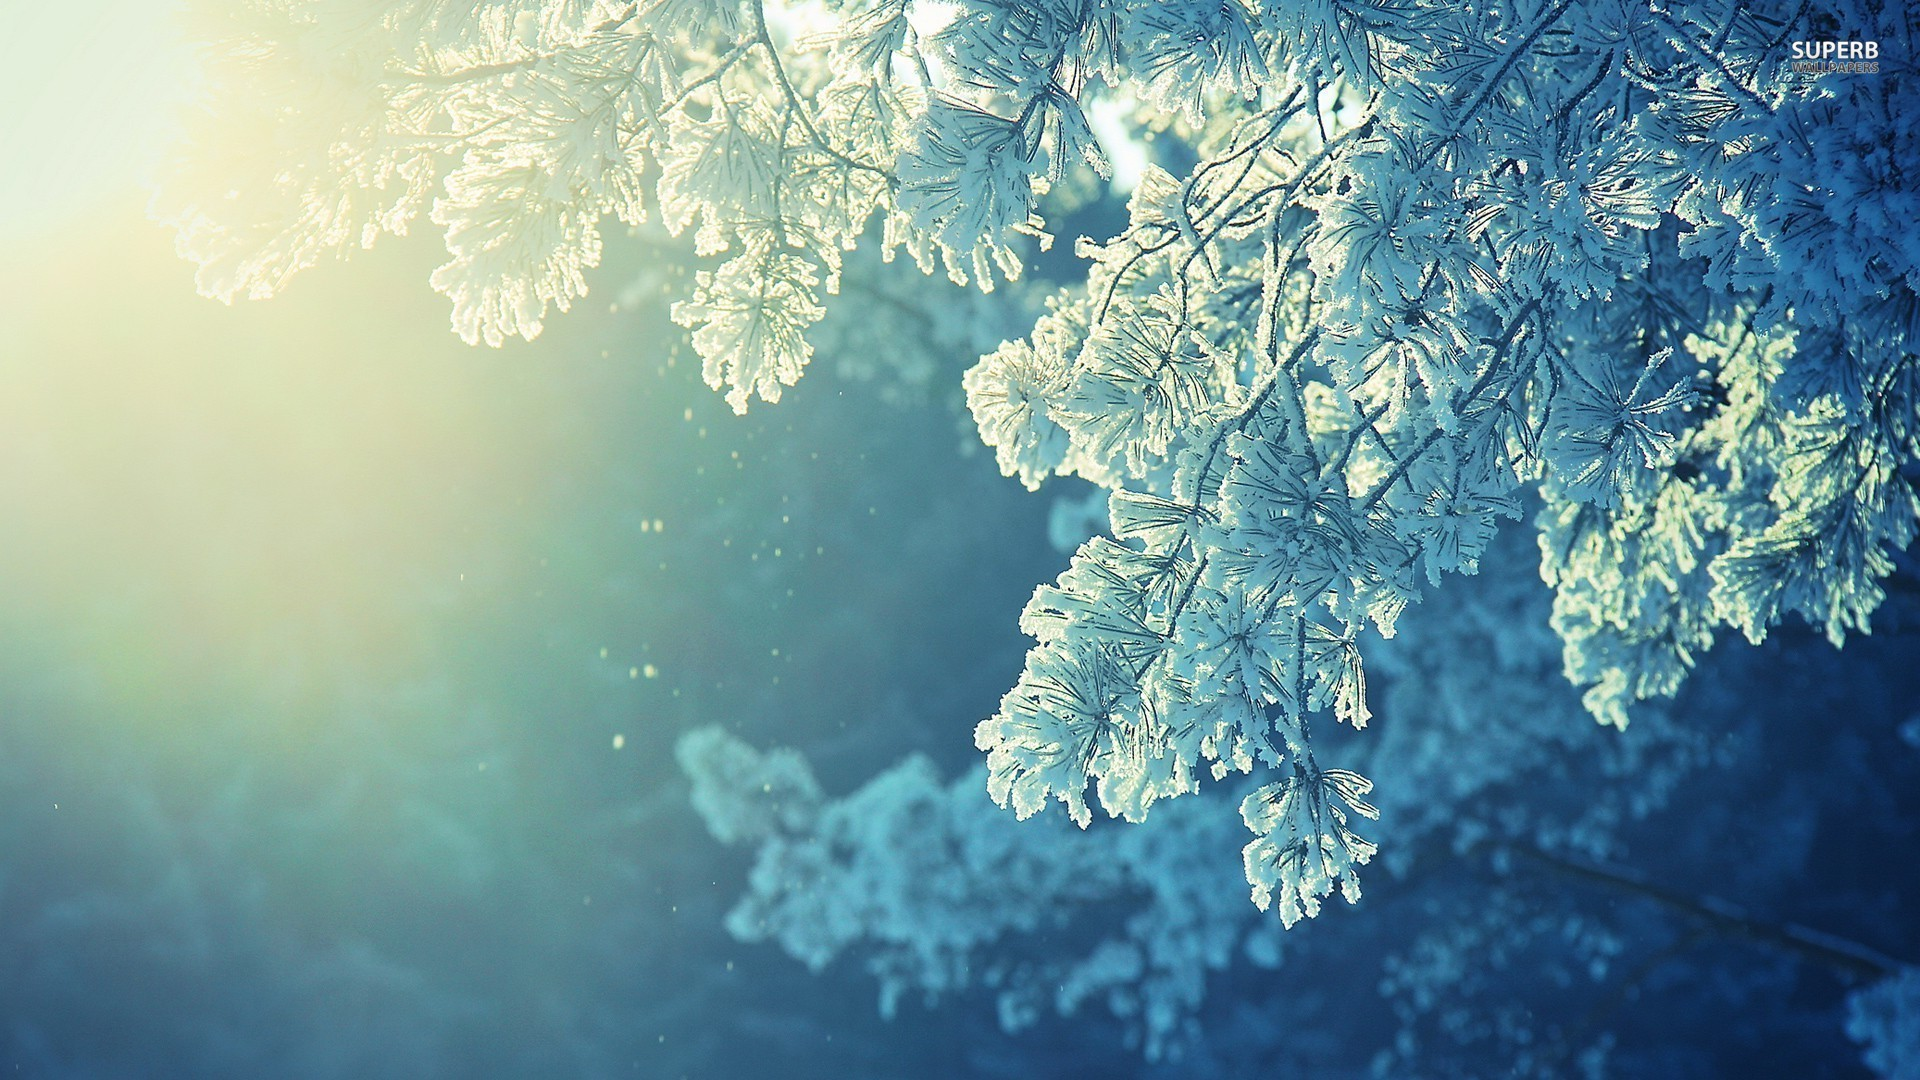 Frosty Wallpapers